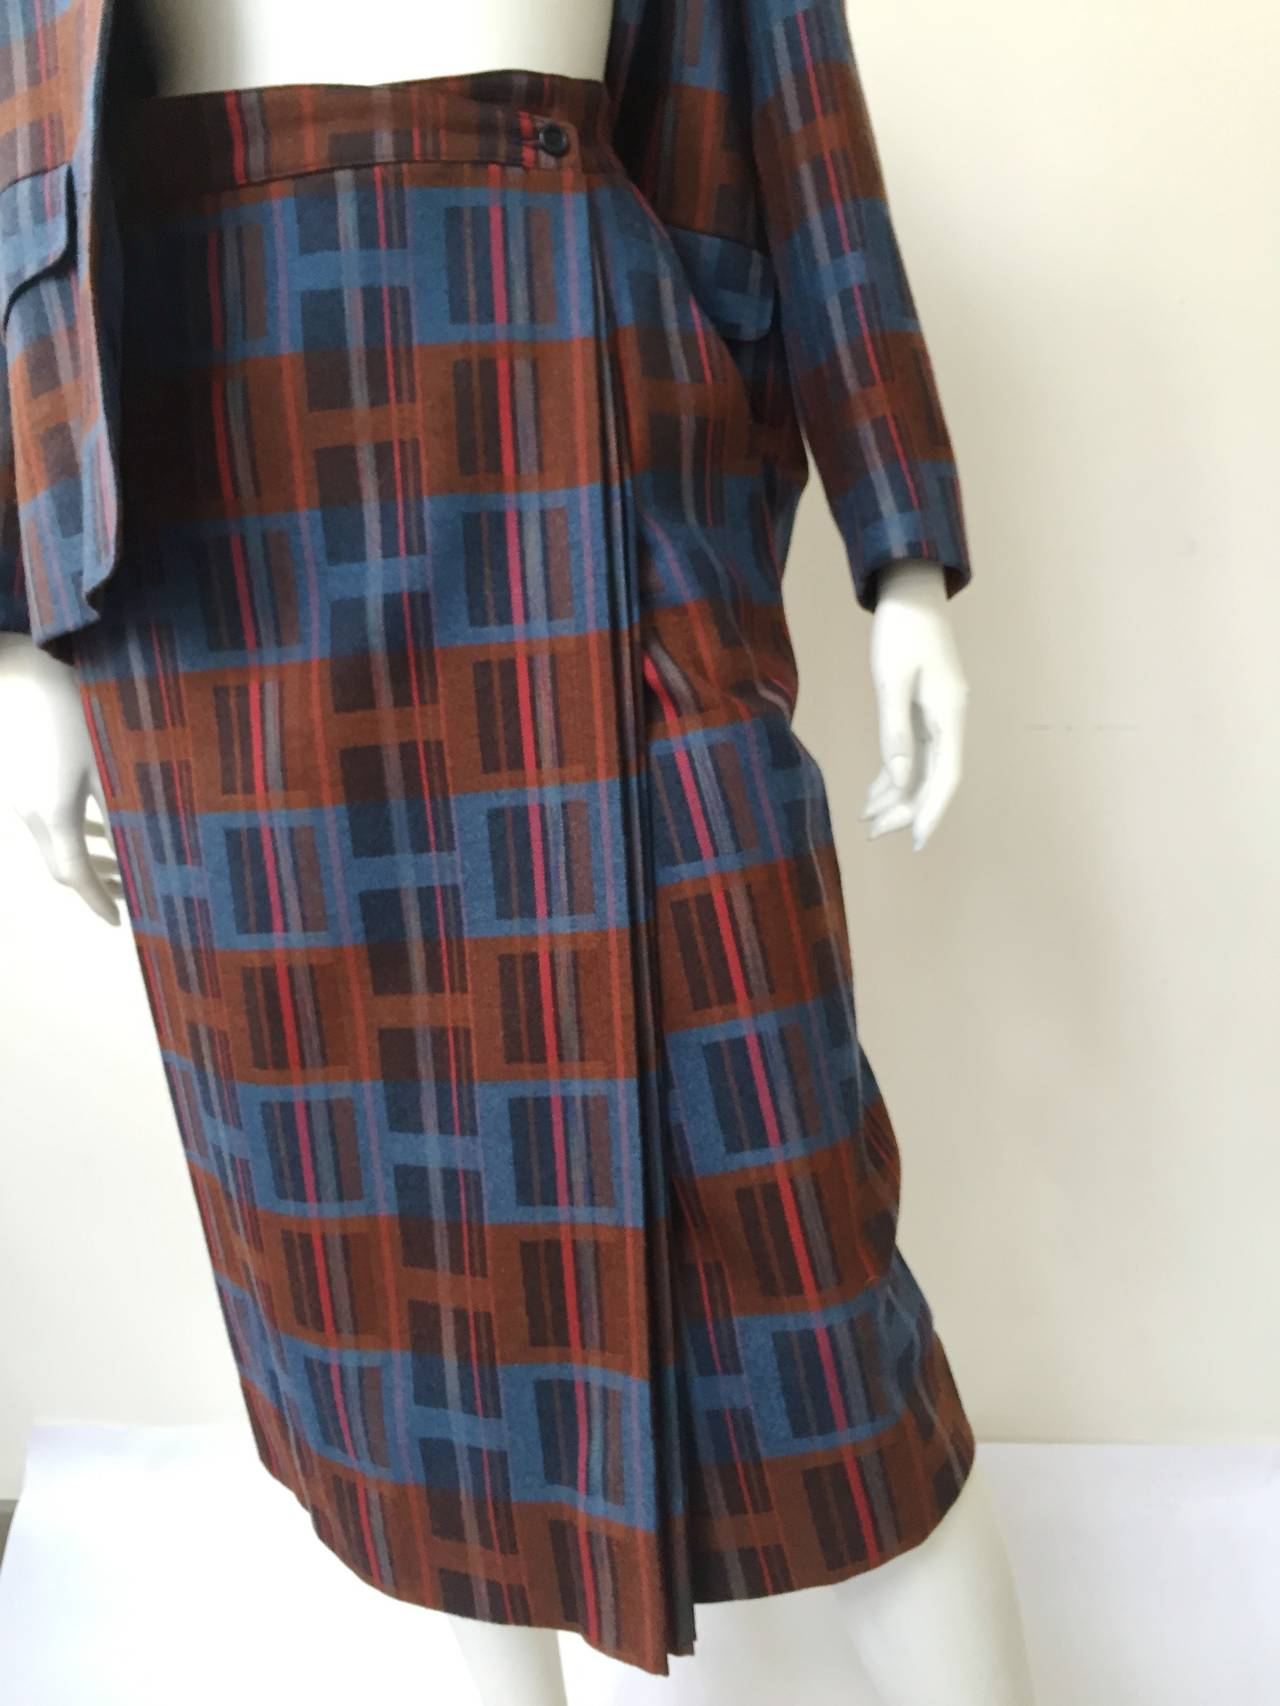 Black Ted Lapidus 70s modern print wool skirt suit size 6. For Sale